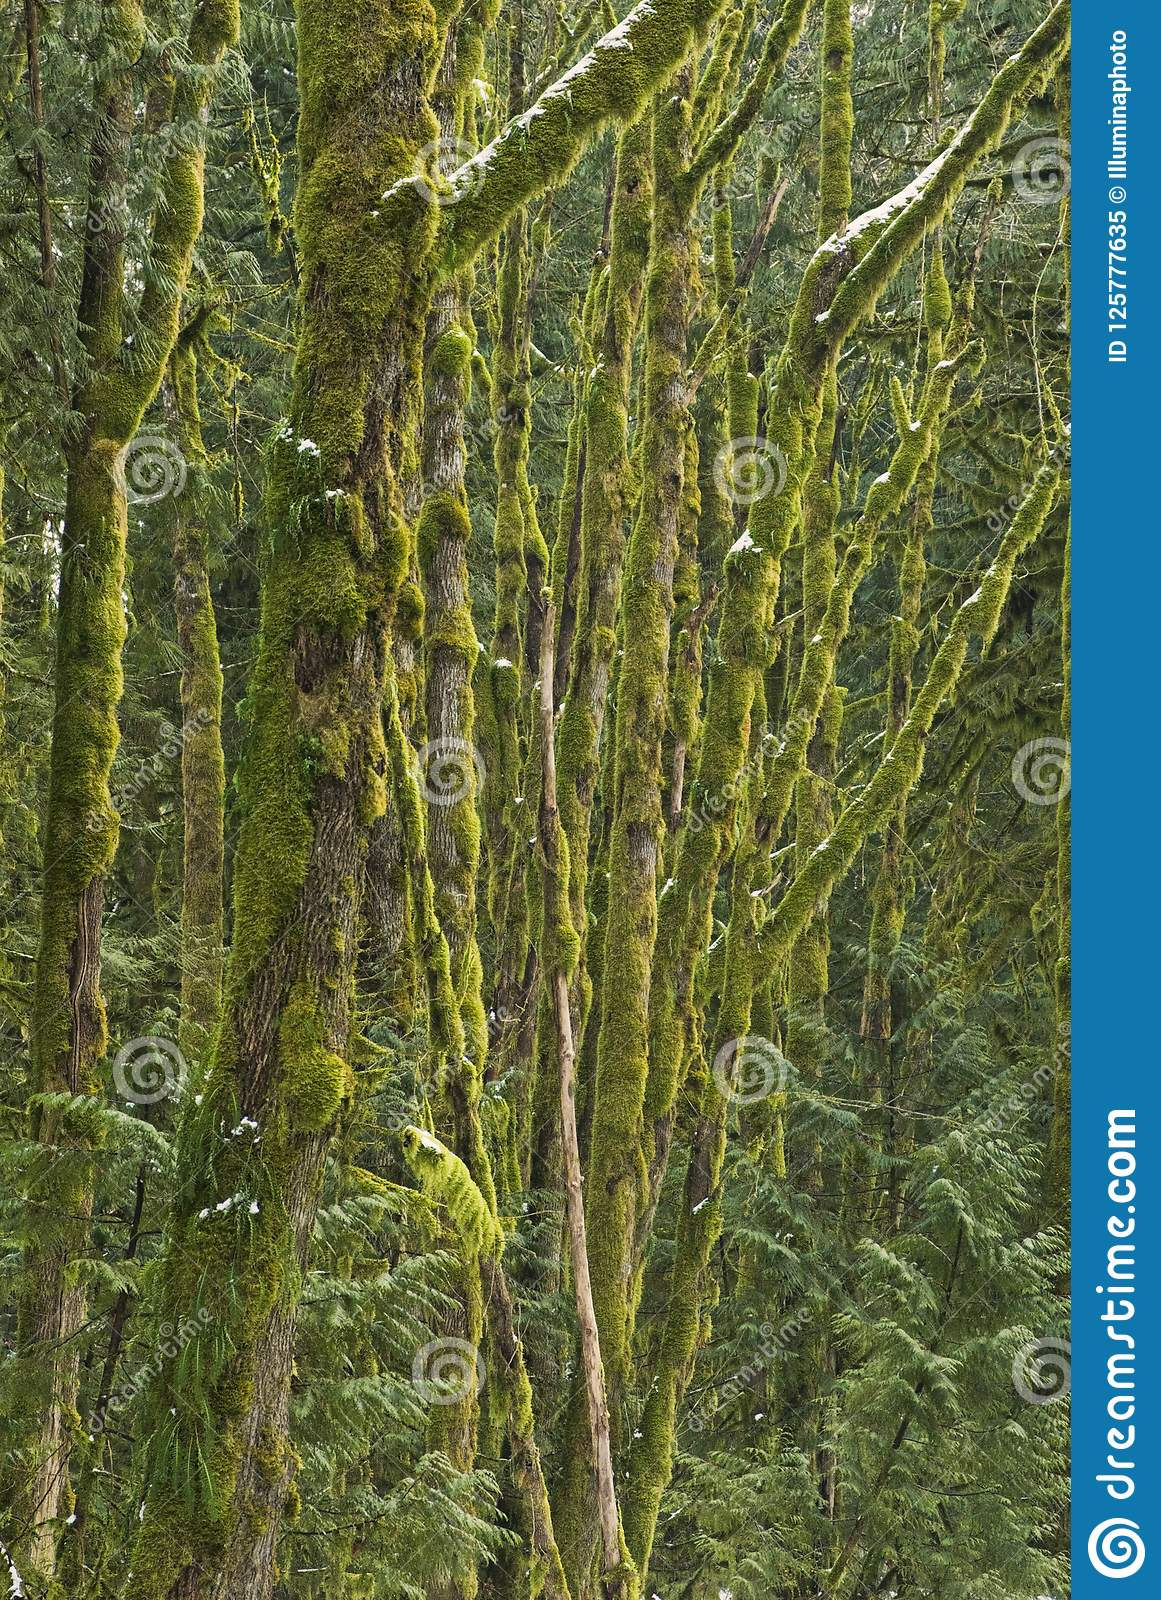 Moss covered trees in a mixed forest, near Squamish, British Columbia, Canada.